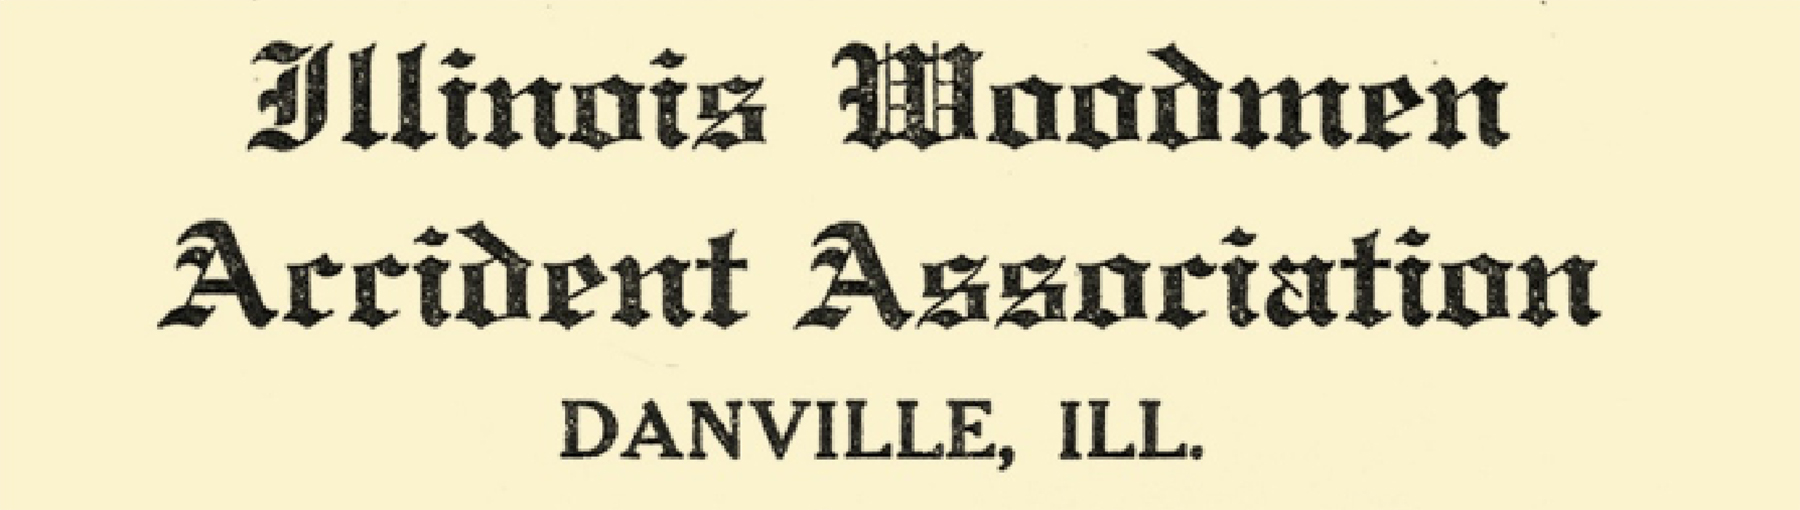 The logo for Illinois Woodmen Accident Association, which would later become Illinois Mutual.